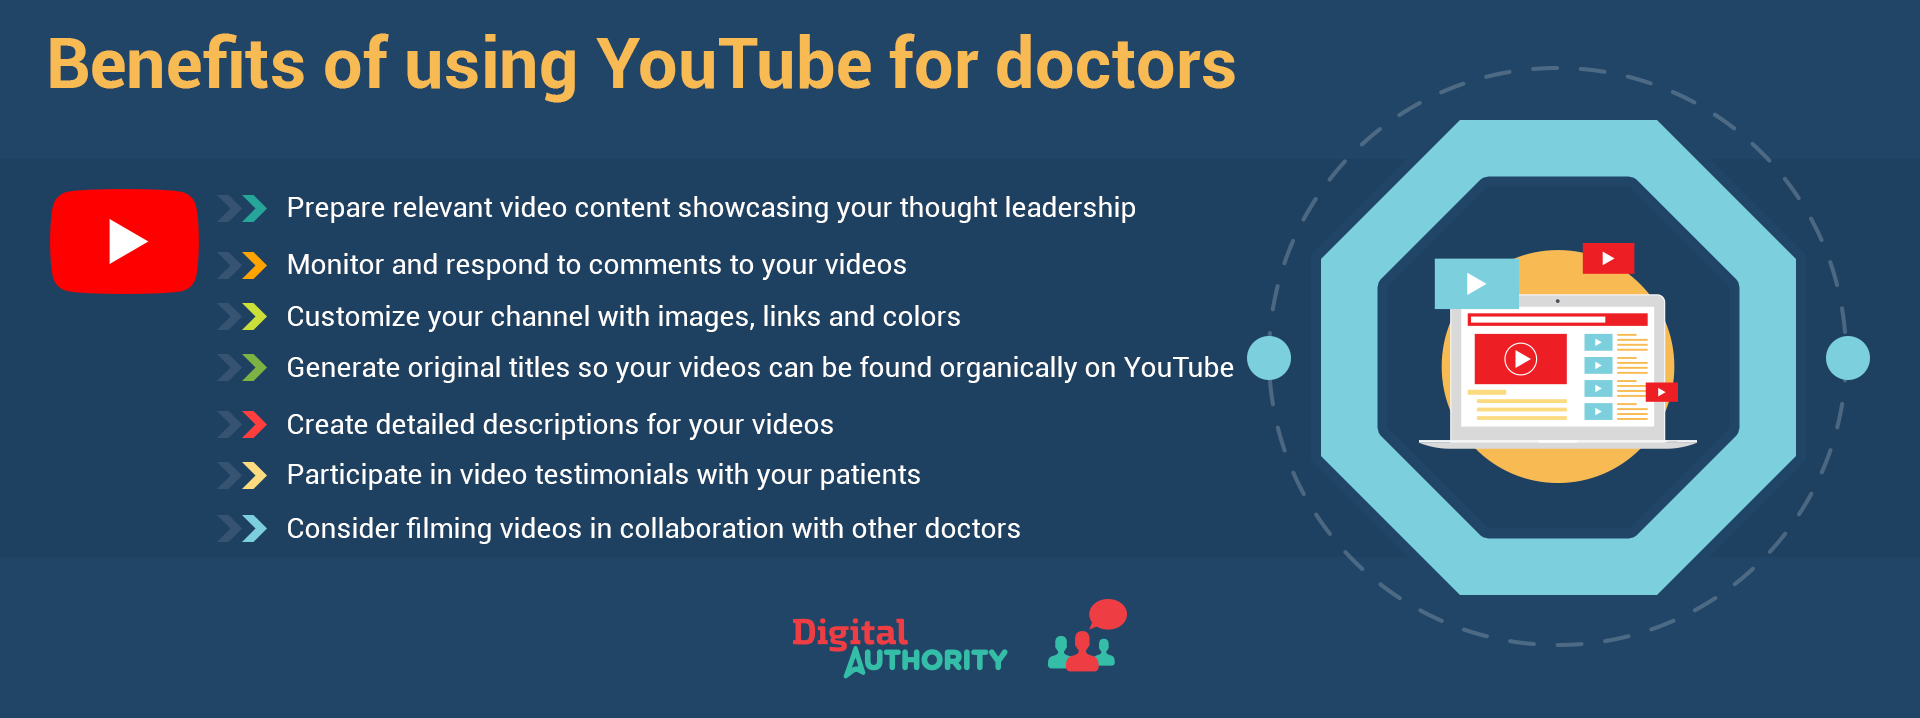 Benefits of using YouTube for doctors: 1. Prepare relevant video content showcasing your thought leadership. 2. Monitor and respond to comments in your videos. 3. Customize your channel with images, links, and colors. 4. Generate original titles so your videos can be found organically on YouTube. 5. Create detailed descriptions of your videos. 6. Participate in video testimonials with your patients. 7. Consider filming videos in collaboration with other doctors